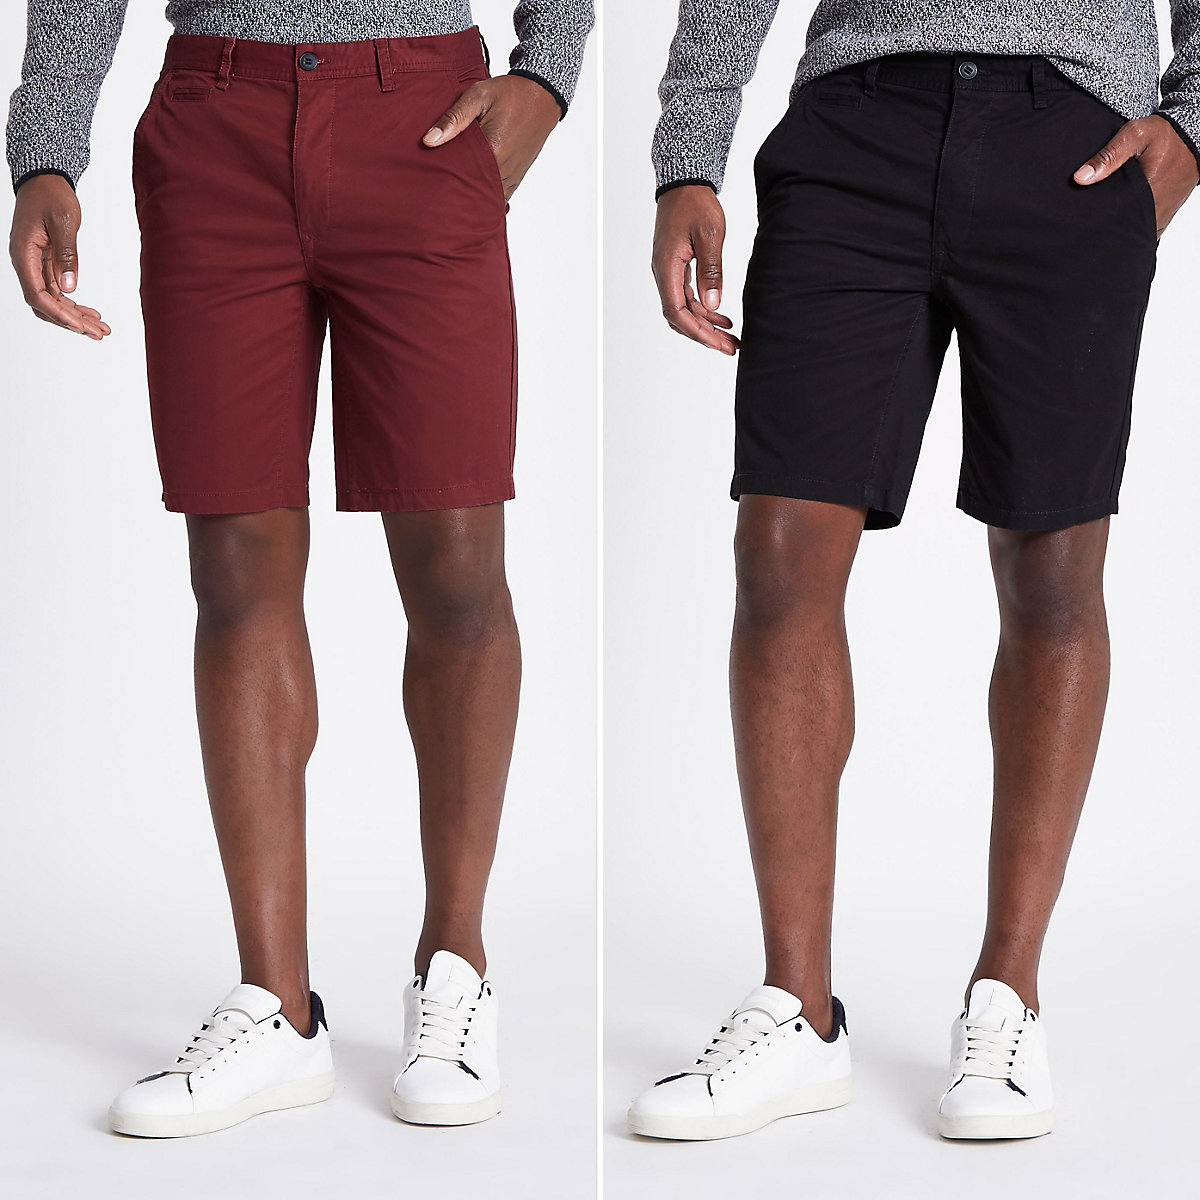 Lot de 2 shorts chino slim noirs